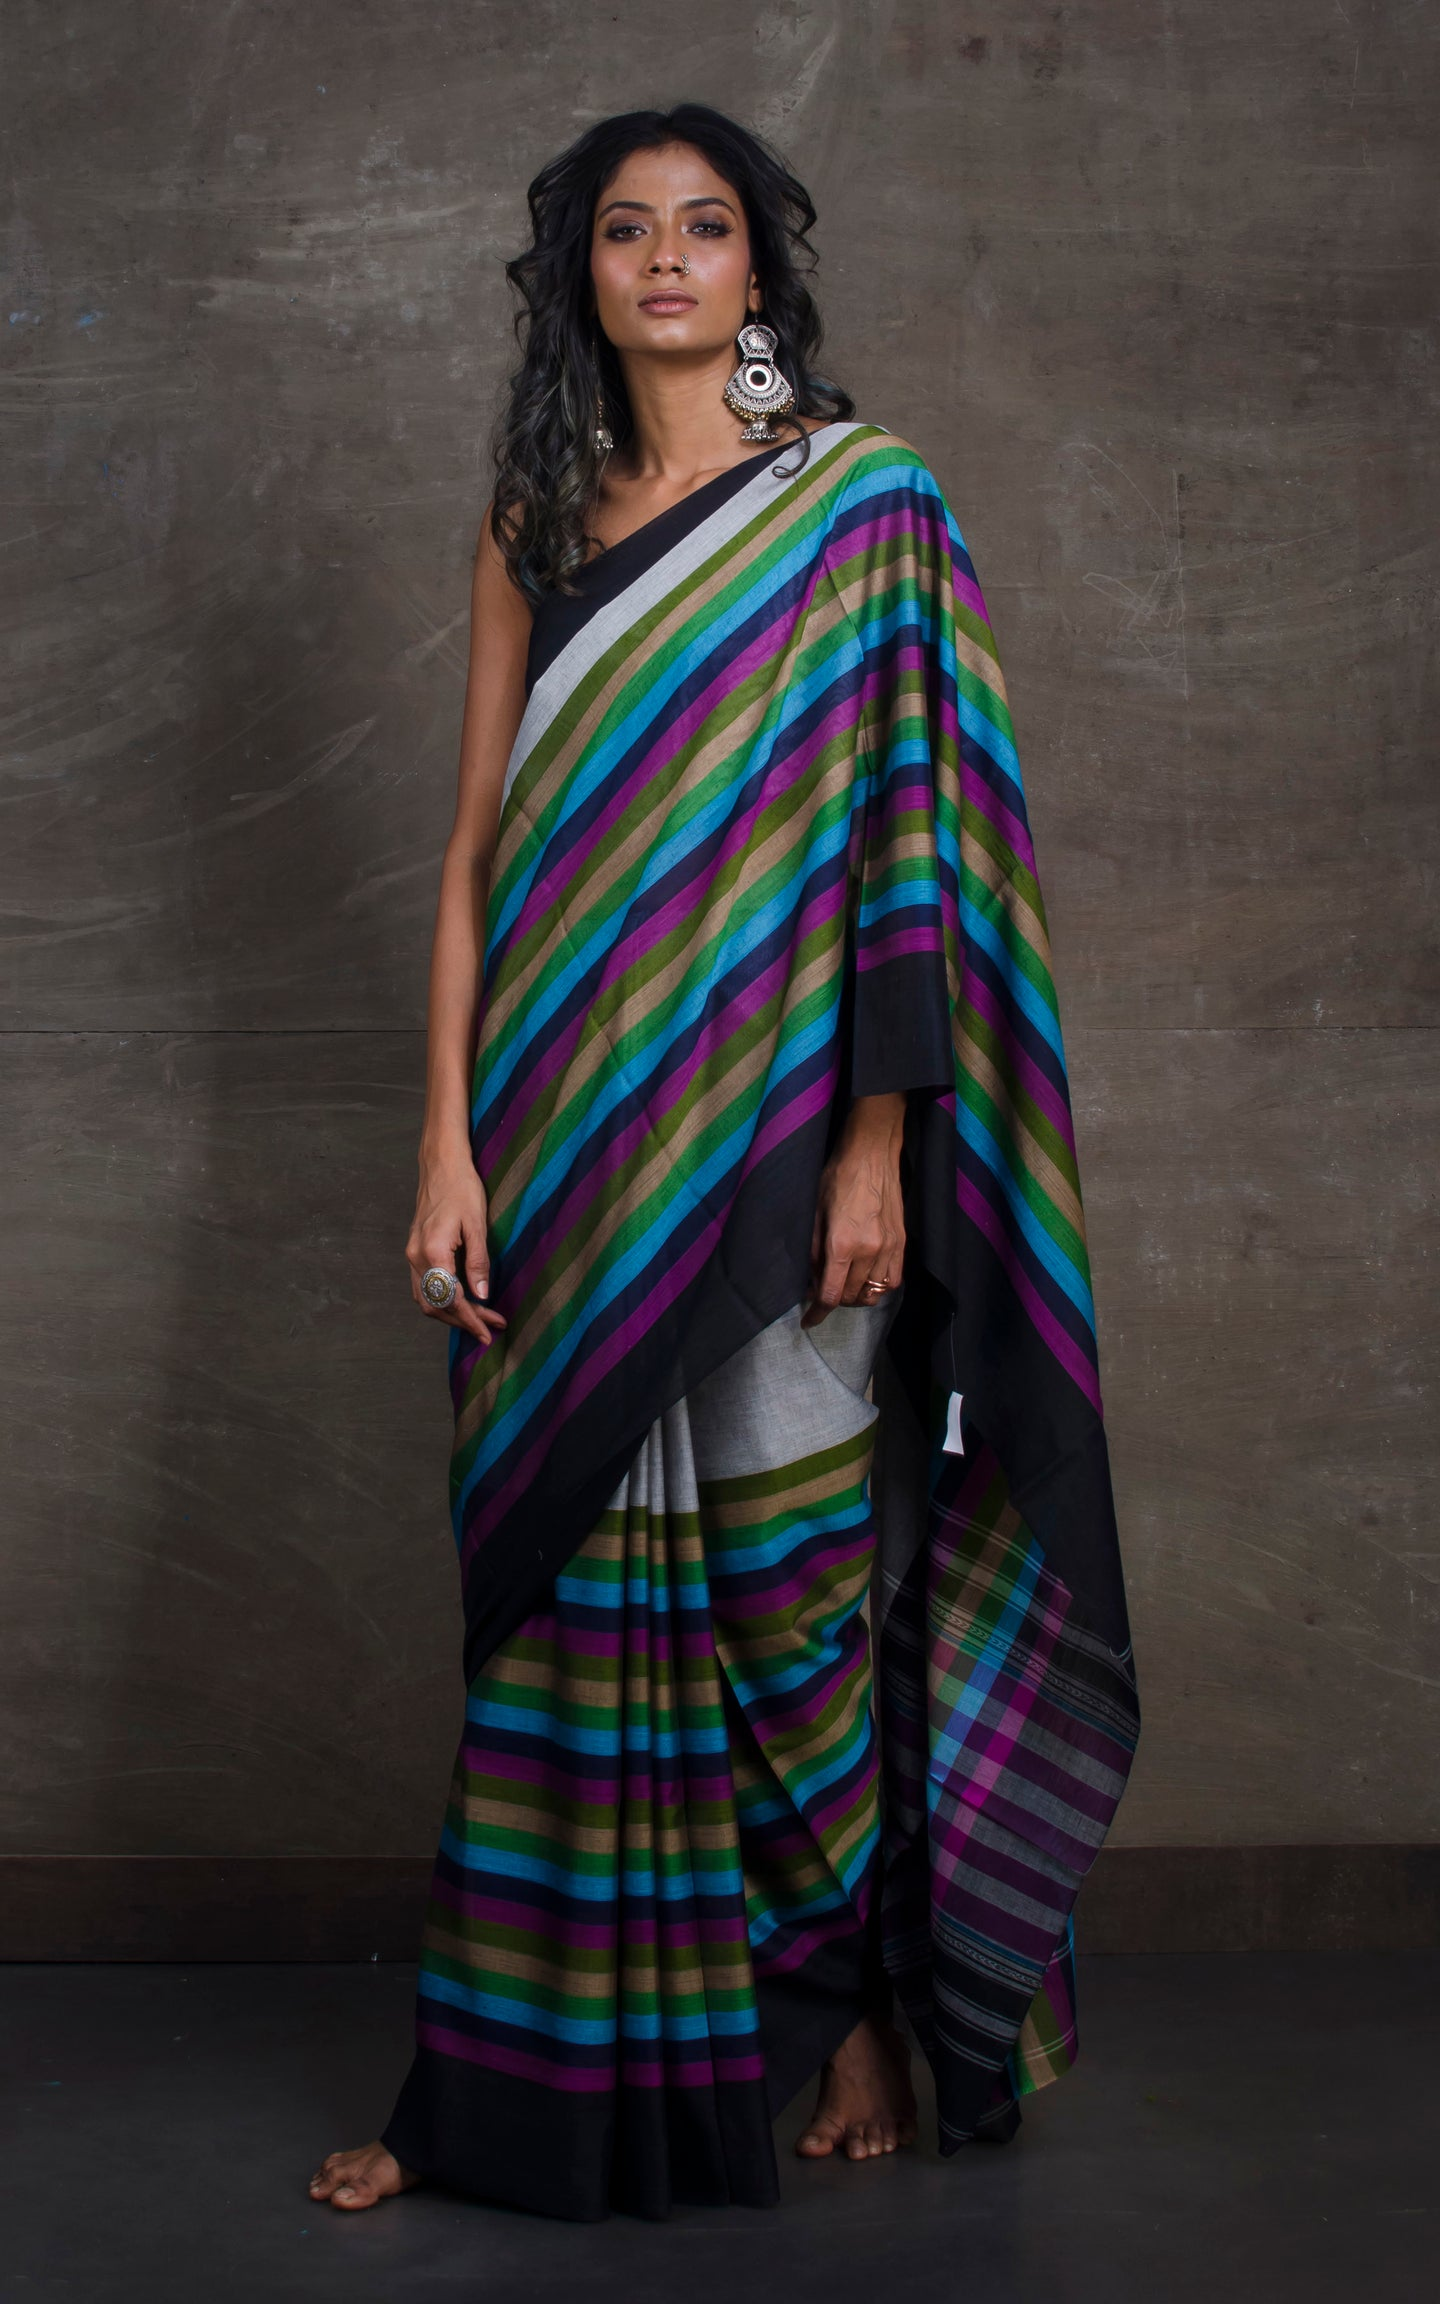 Bengal Handloom Designer Cotton Saree in Light Grey, Black and Multicolored